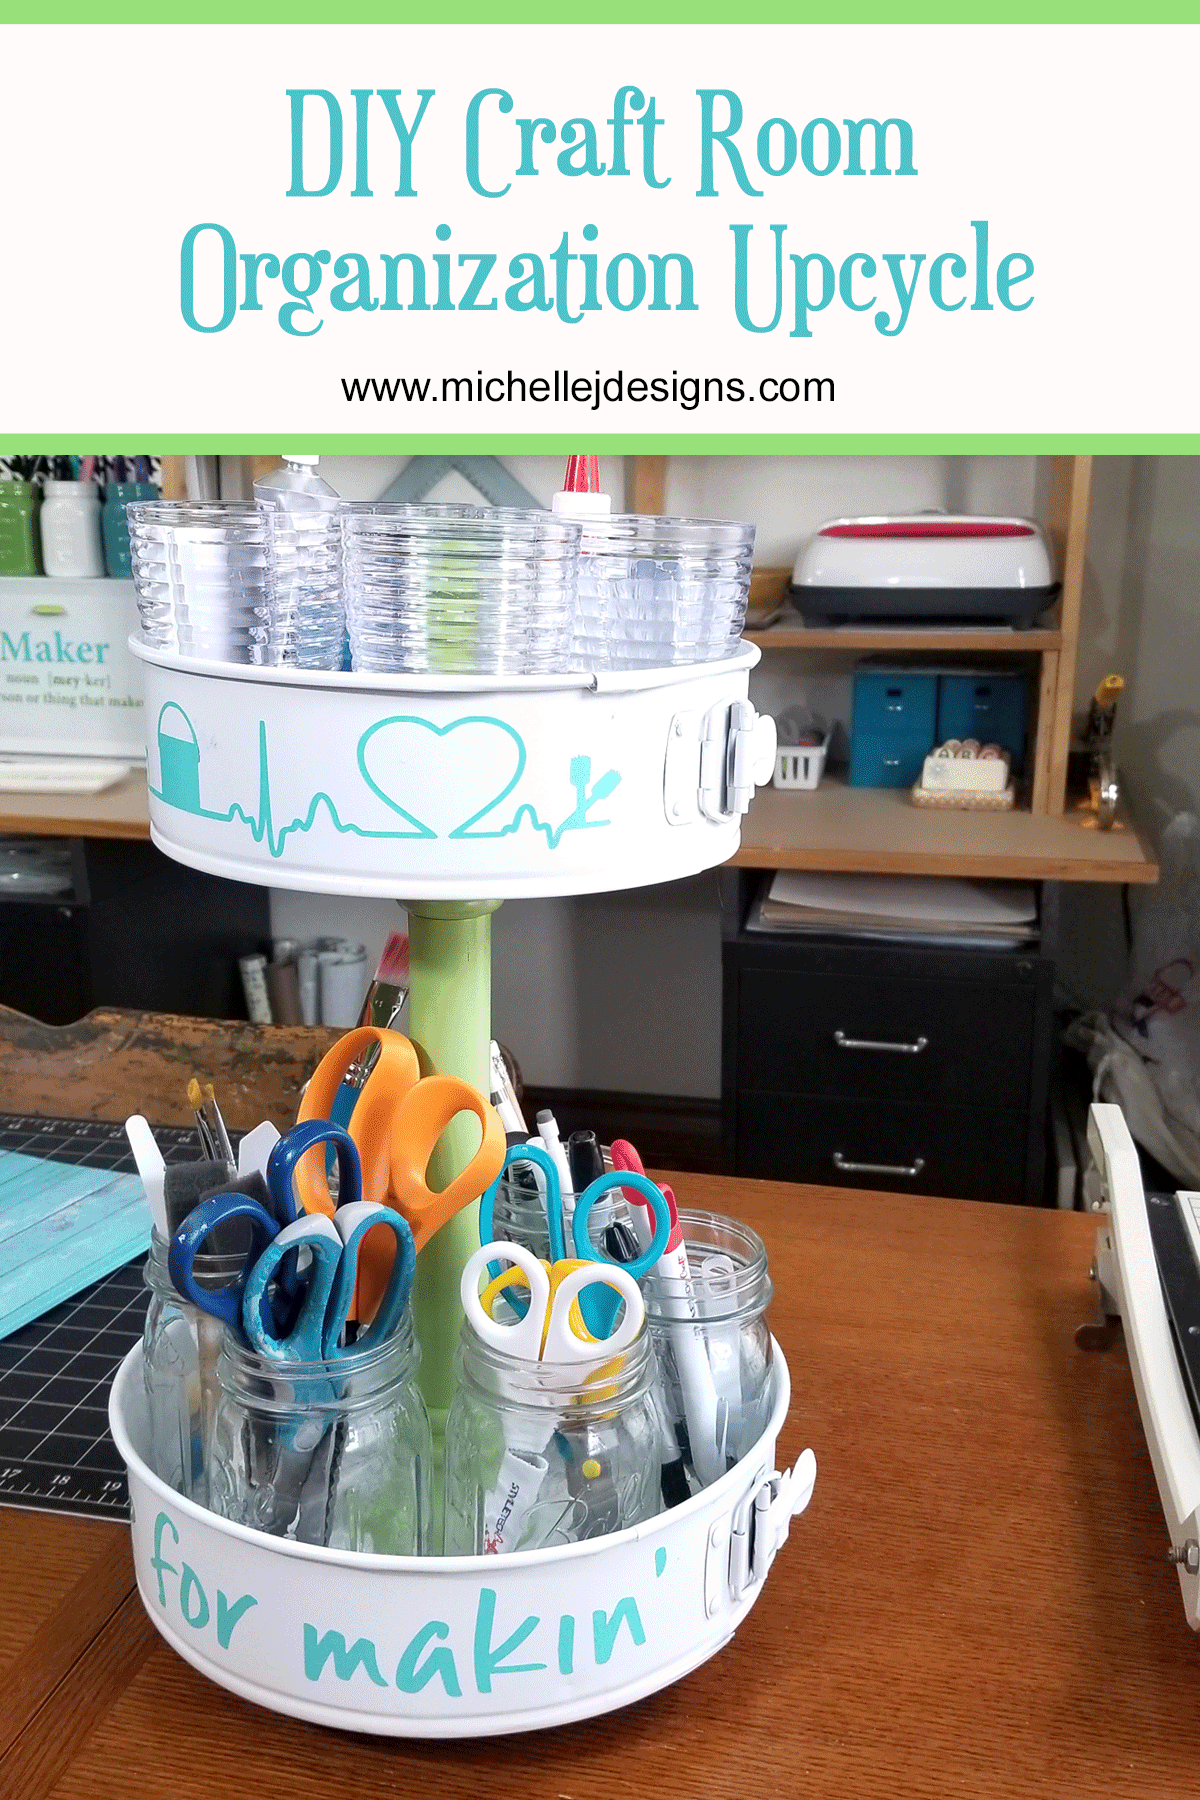 White, teal and green craft tool organizer sitting on craft table full of my favorite tools